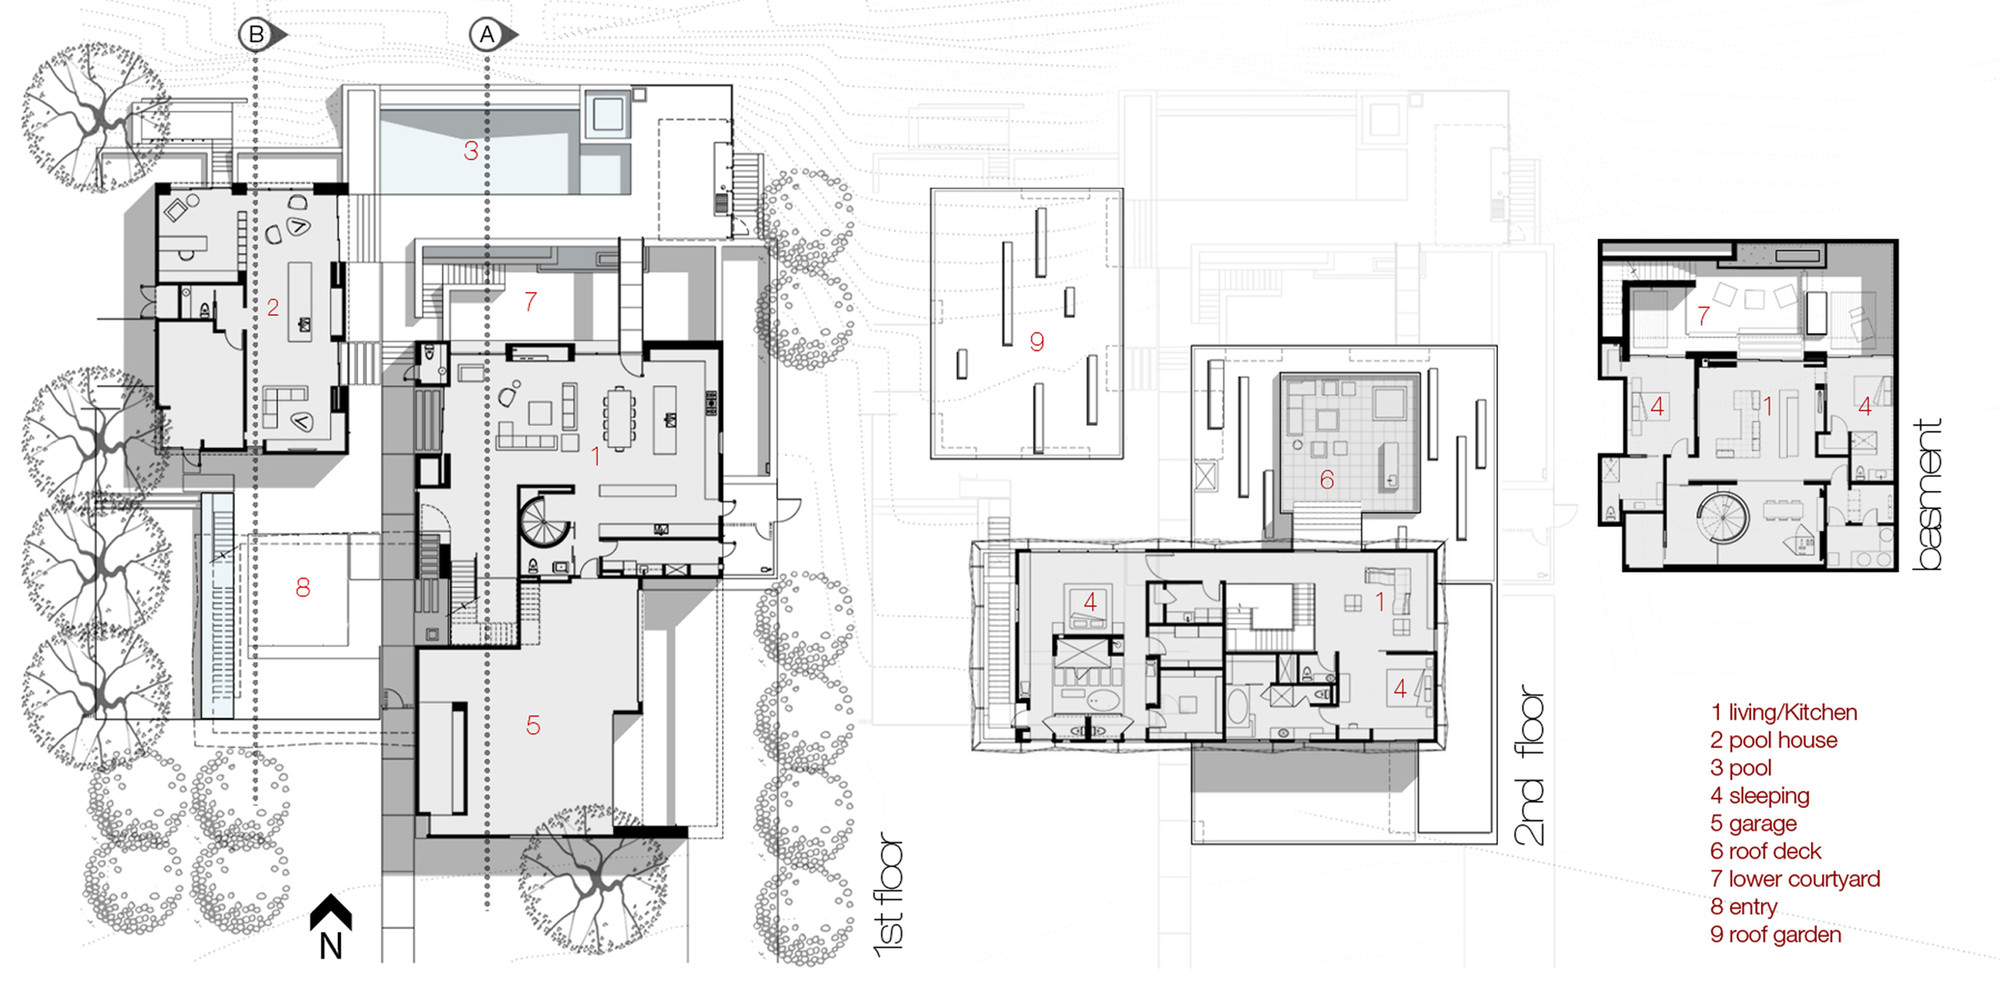 Gallery of tresarca assemblagestudio 29 for Las vegas house plans